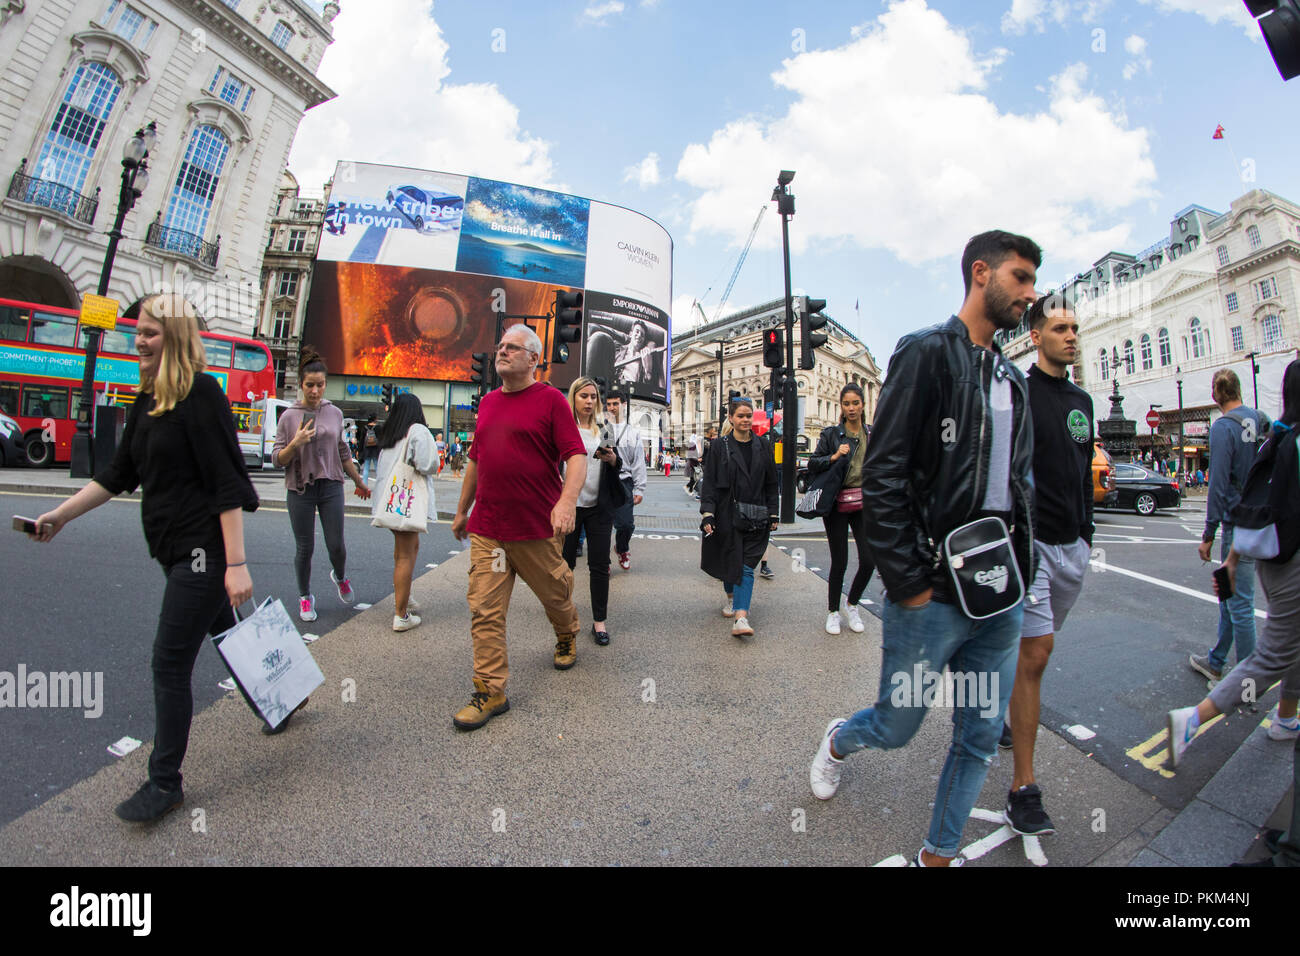 Pedestrians at Picadilly Circus - Stock Image